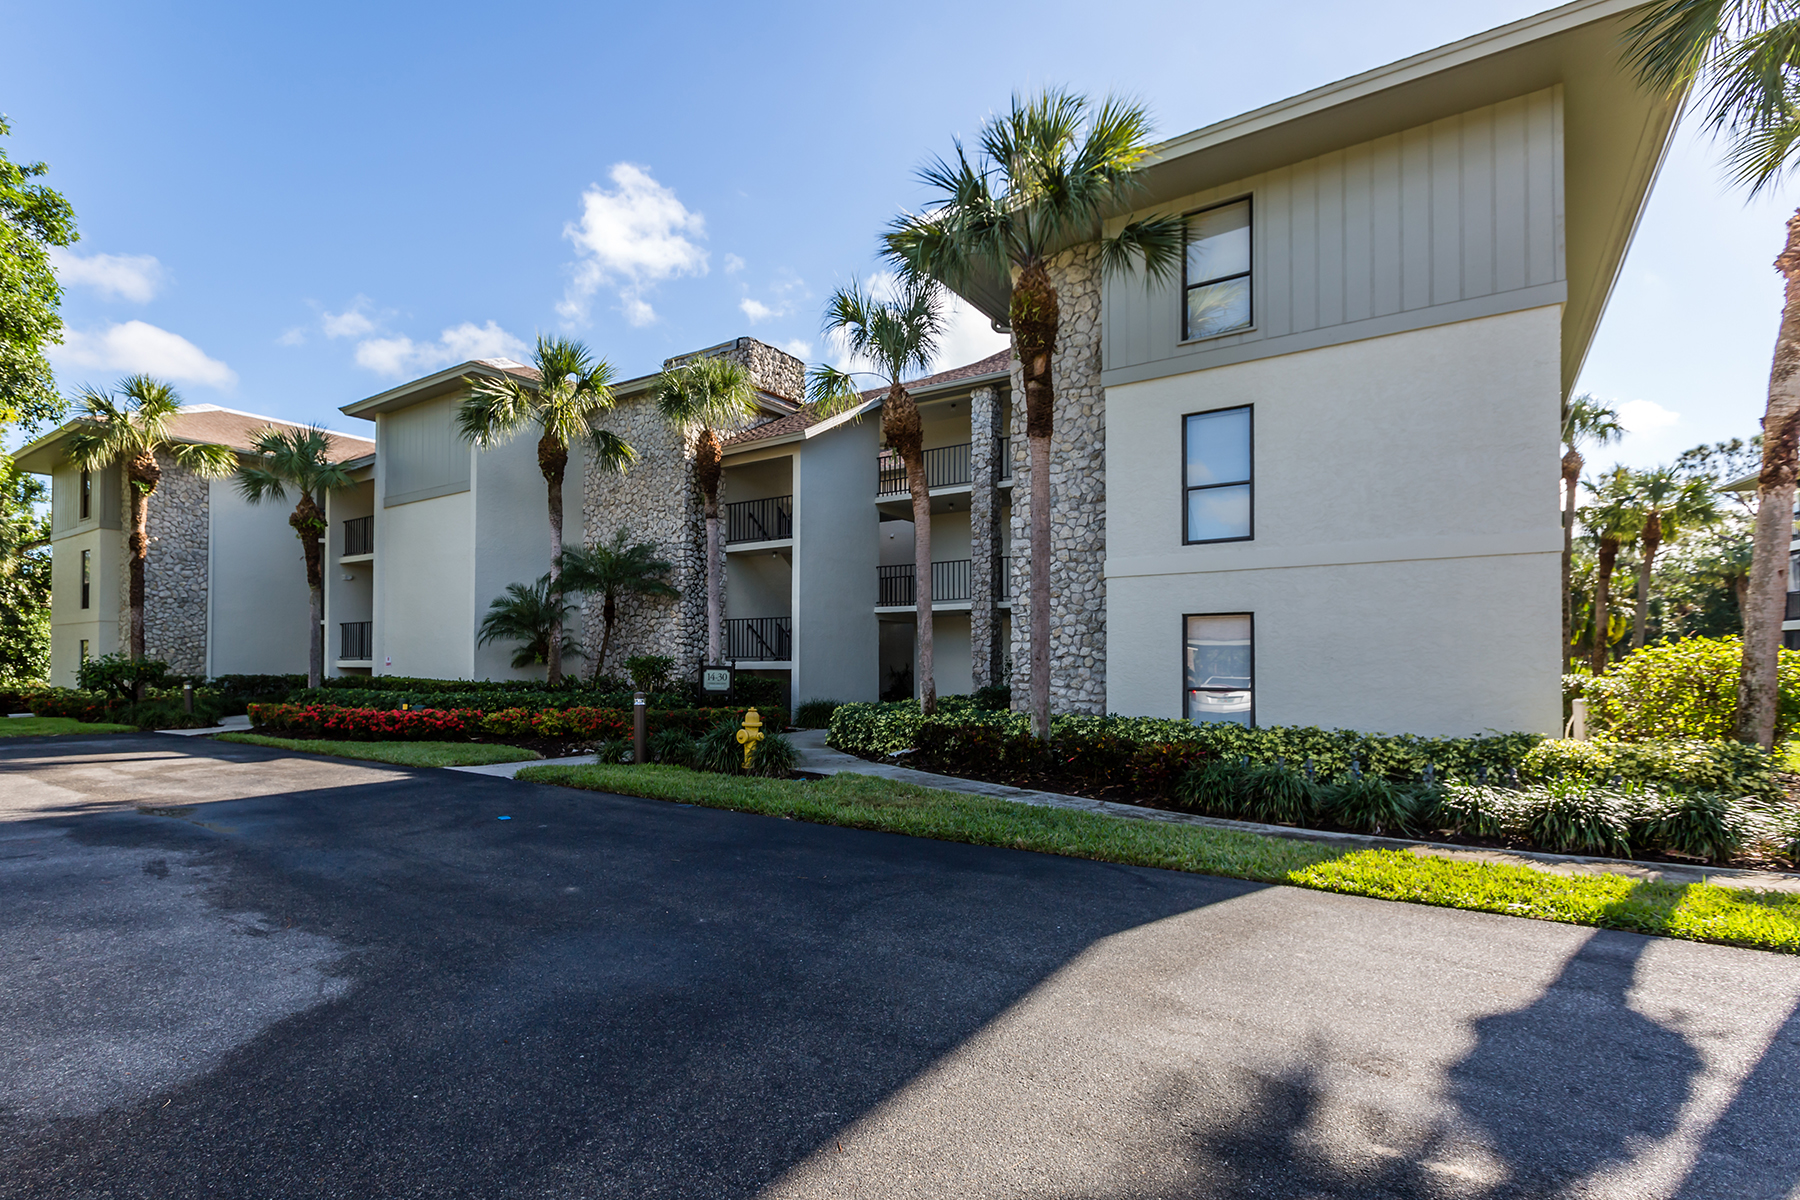 Condominium for Sale at EAGLE CREEK 26 Cypress View Dr, Naples, Florida, 34113 United States